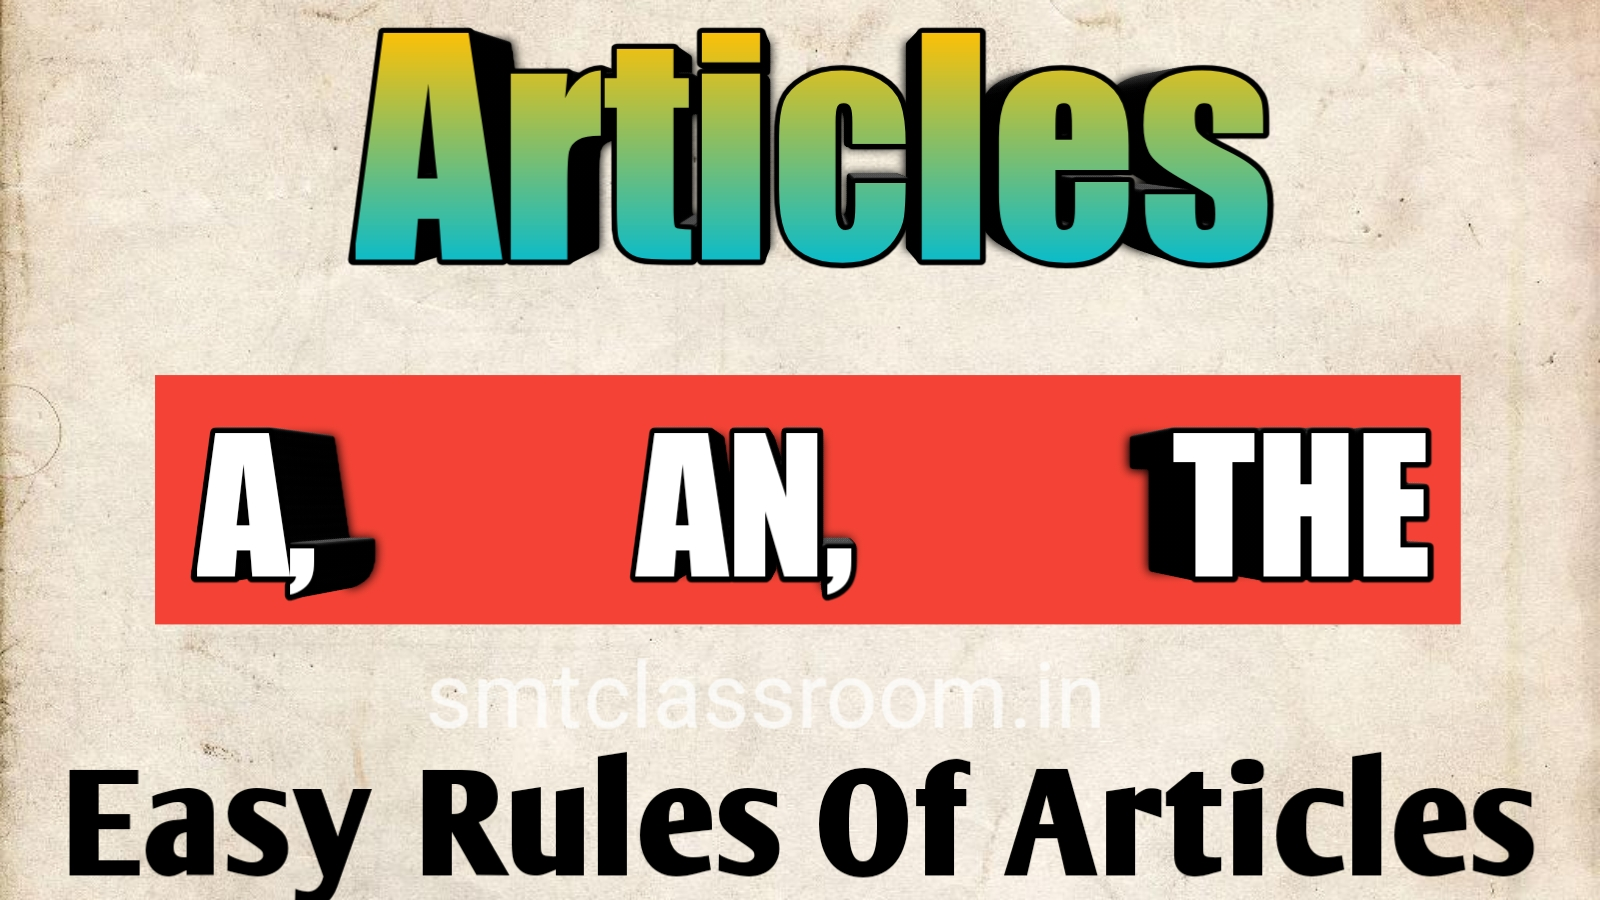 articles,articles in english grammar,articles a an the,article in bengali,article,use of article in bengali,use of a an the,use of a an and the,use of the,use of article,article in bangla,parts of speech,uses of article in bangla,definite article,use of articles in english,use of articles in english grammar exercises,rules of articles in bangla,articles in english